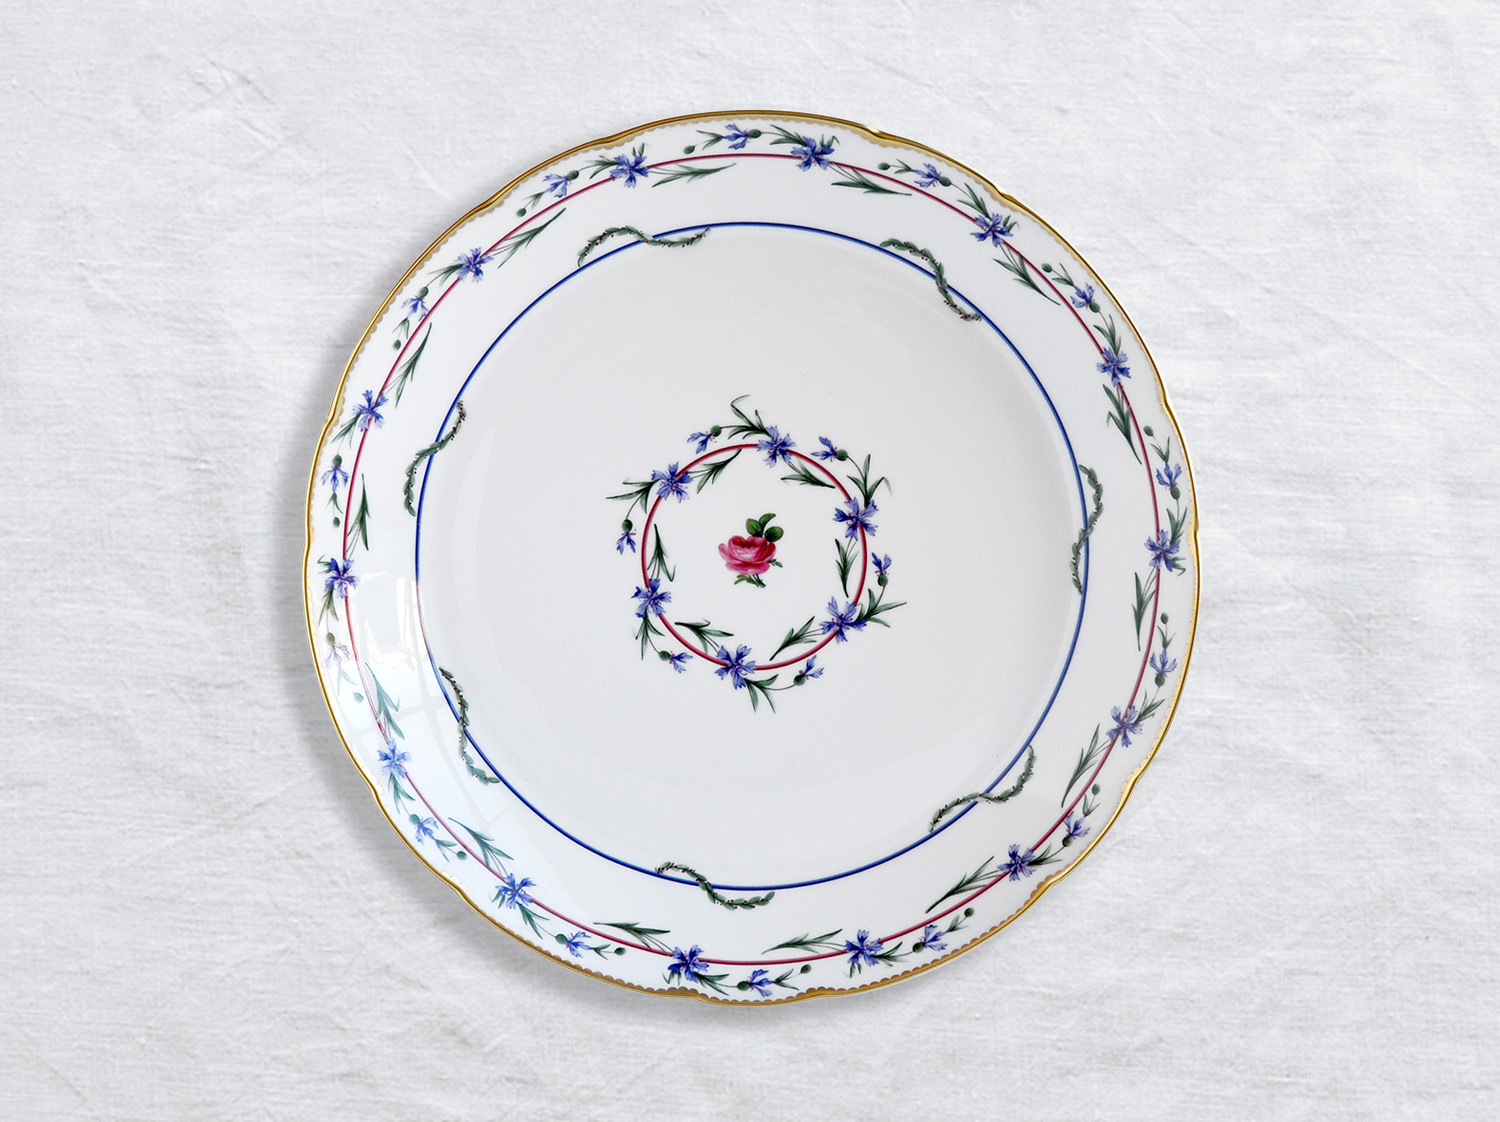 Plat rond creux 29 cm en porcelaine de la collection Gobelet du roy Bernardaud